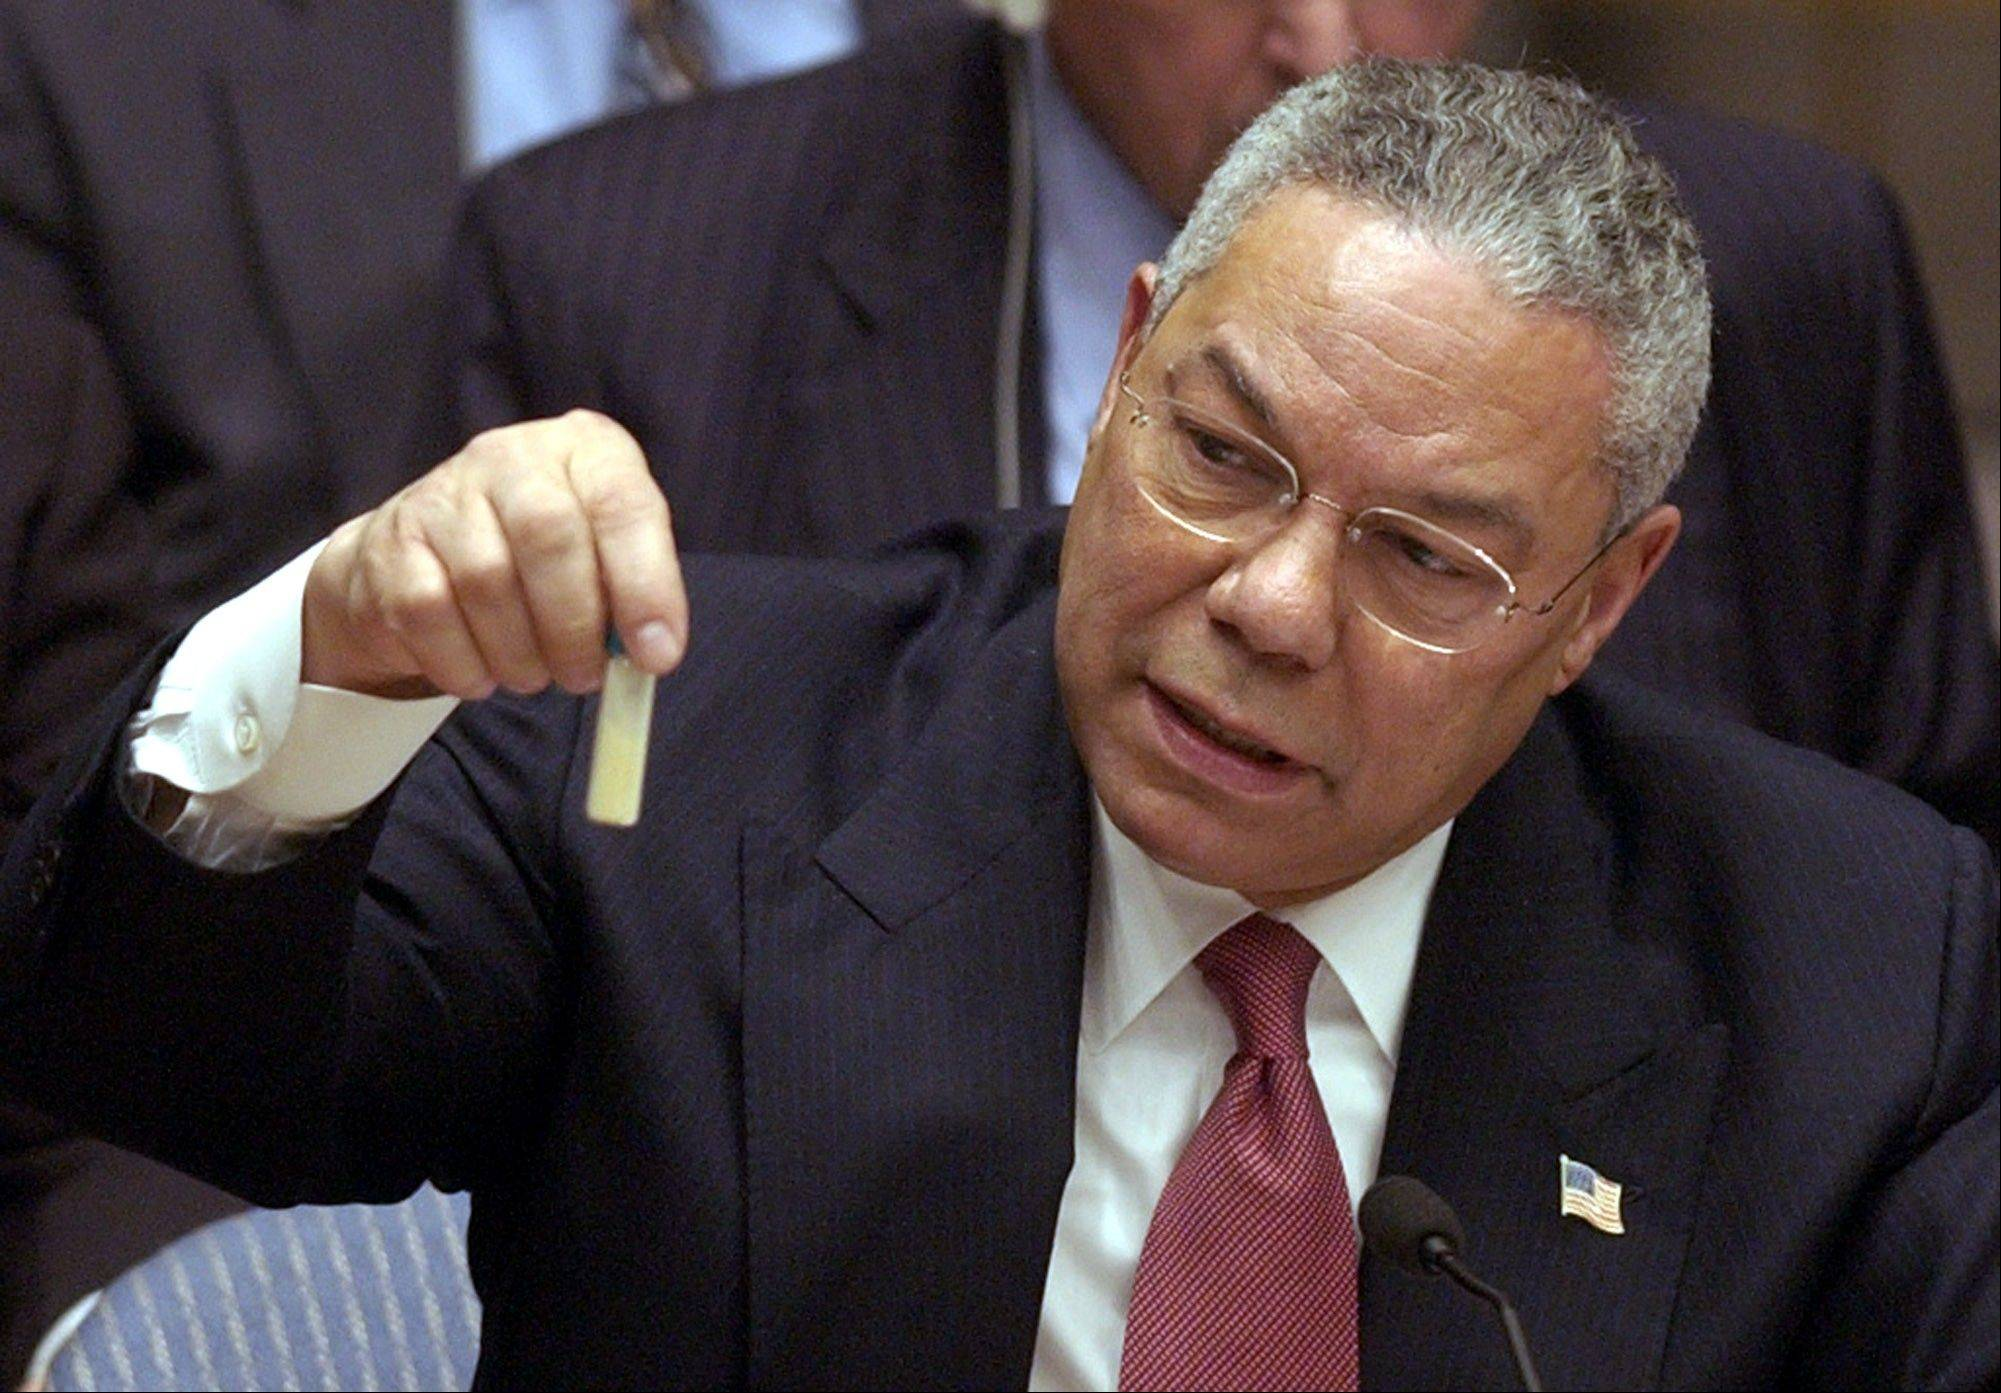 FILE - U.S. Secertary of State Colin Powel holds up a vial that he said could contain anthrax during a meeting of the United Nations Security Council at the United Nations headquarters on Wednesday, Feb. 5, 2003.